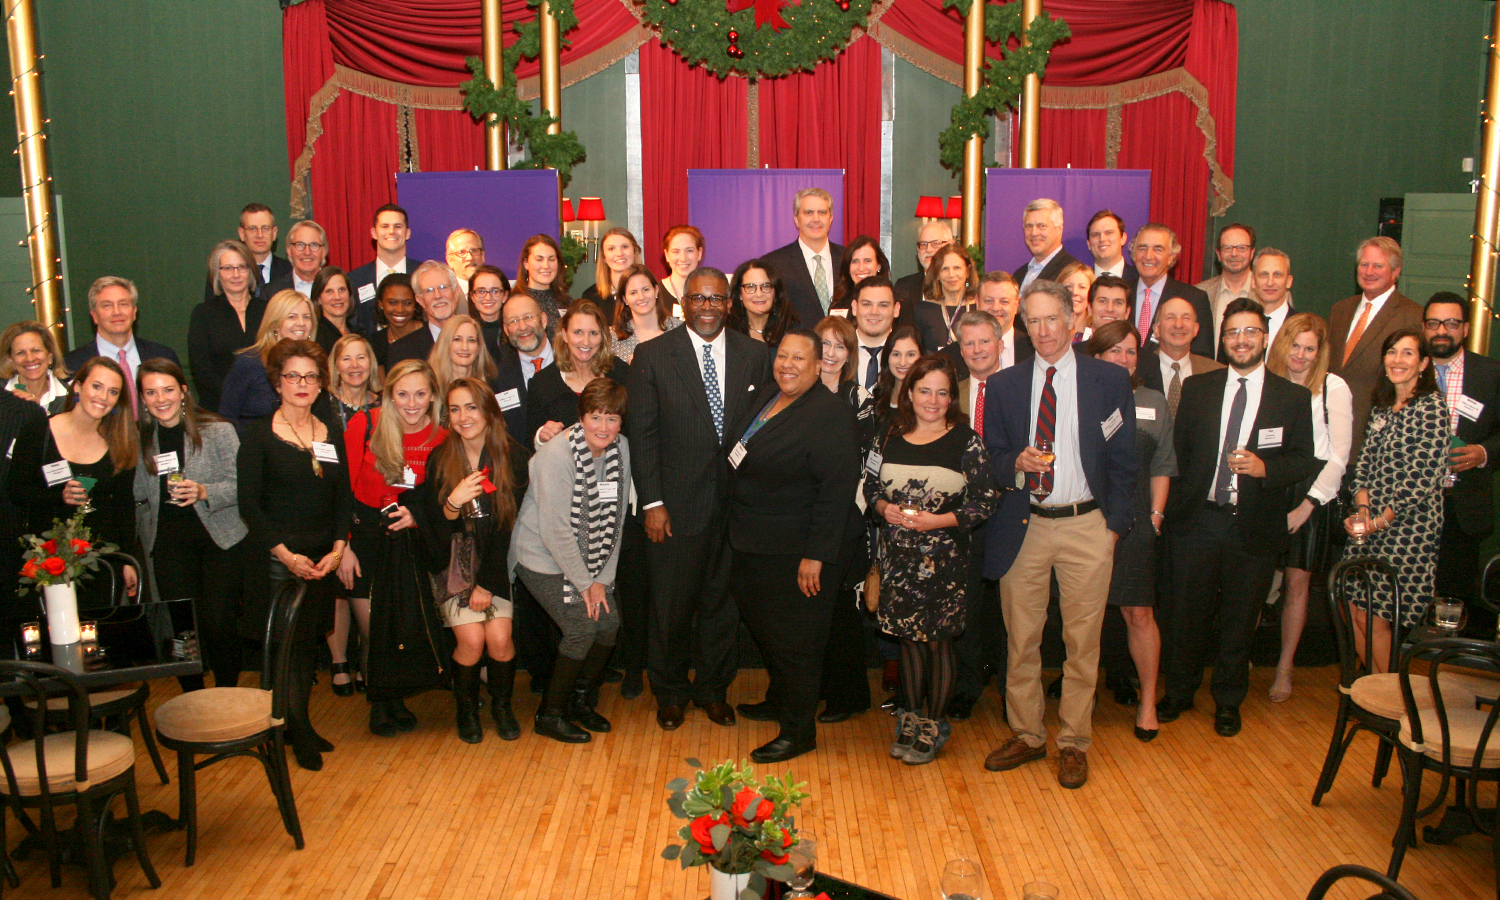 Alums and friends of the Colleges gather for a group photo  with President Gregory J. Vincent during the annual HWS holiday gathering at X in Chicago, IL.